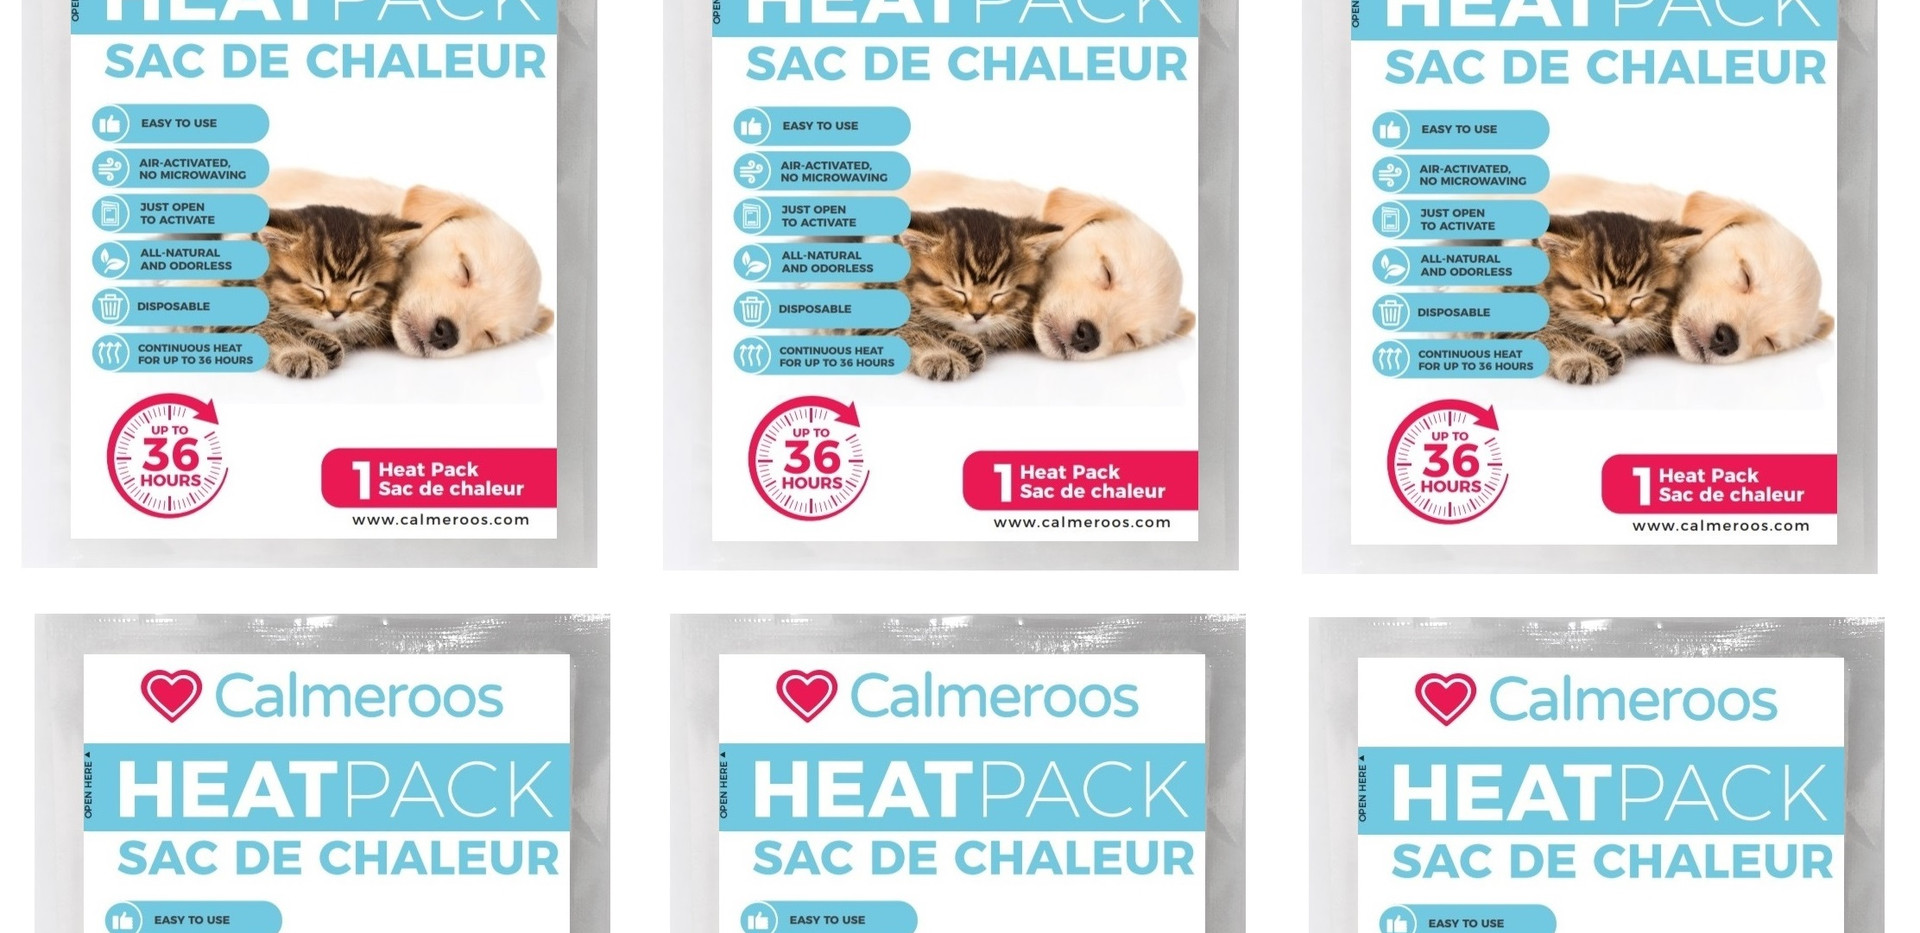 CALMEROOS HEAT PACK REPLACEMENTS